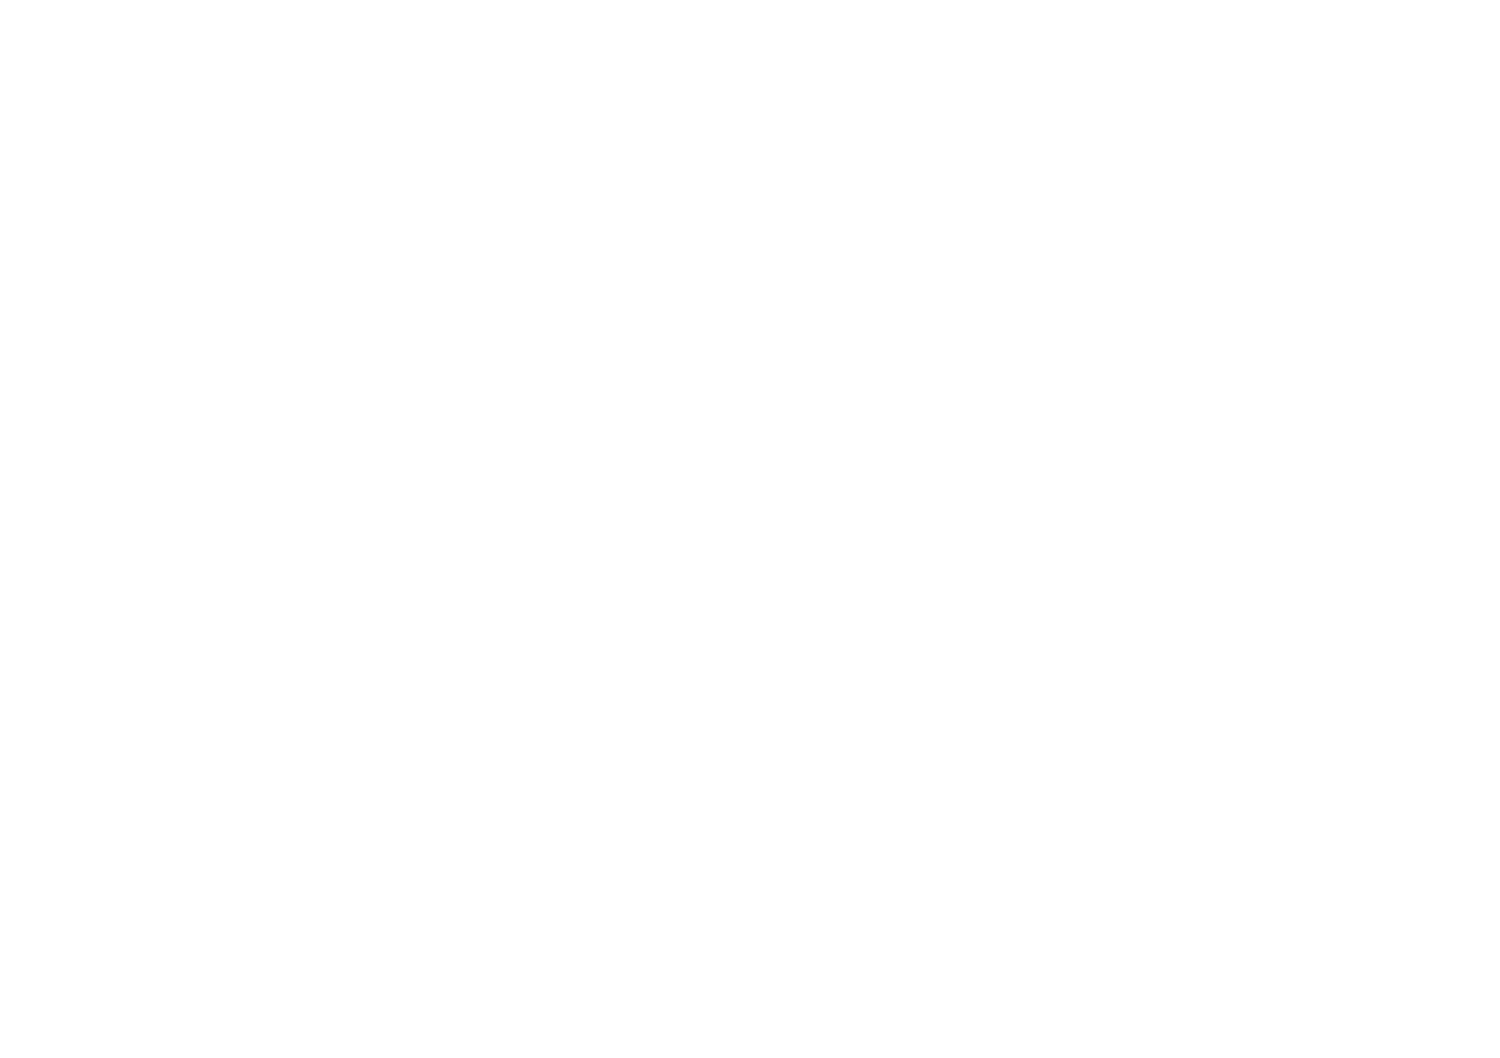 Shawn Thwaites Rebel Quartet